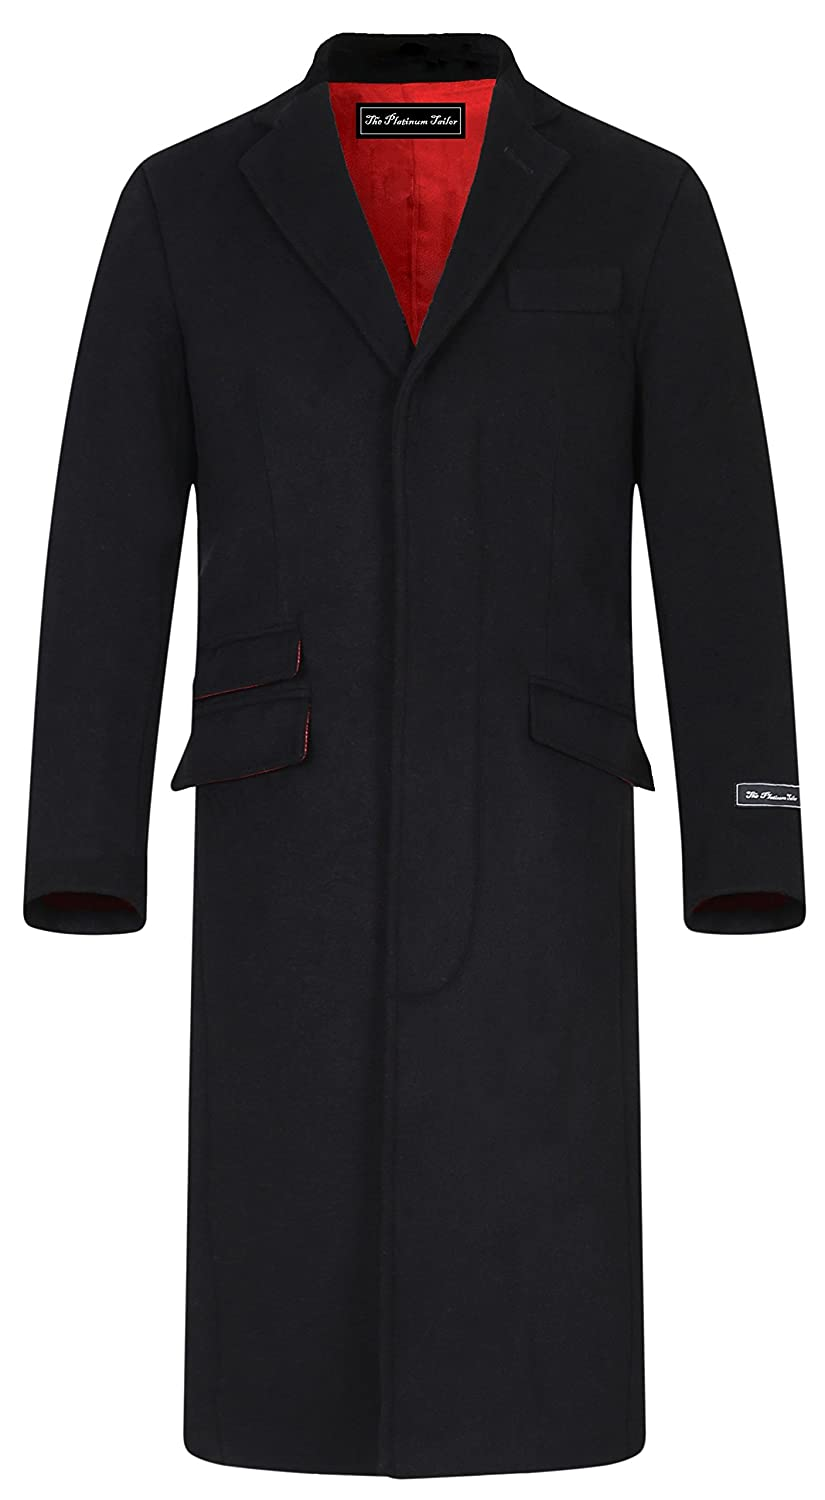 Men's Vintage Style Coats and Jackets  Overcoat Wool Velvet Collar & Red Satin Lining $207.72 AT vintagedancer.com